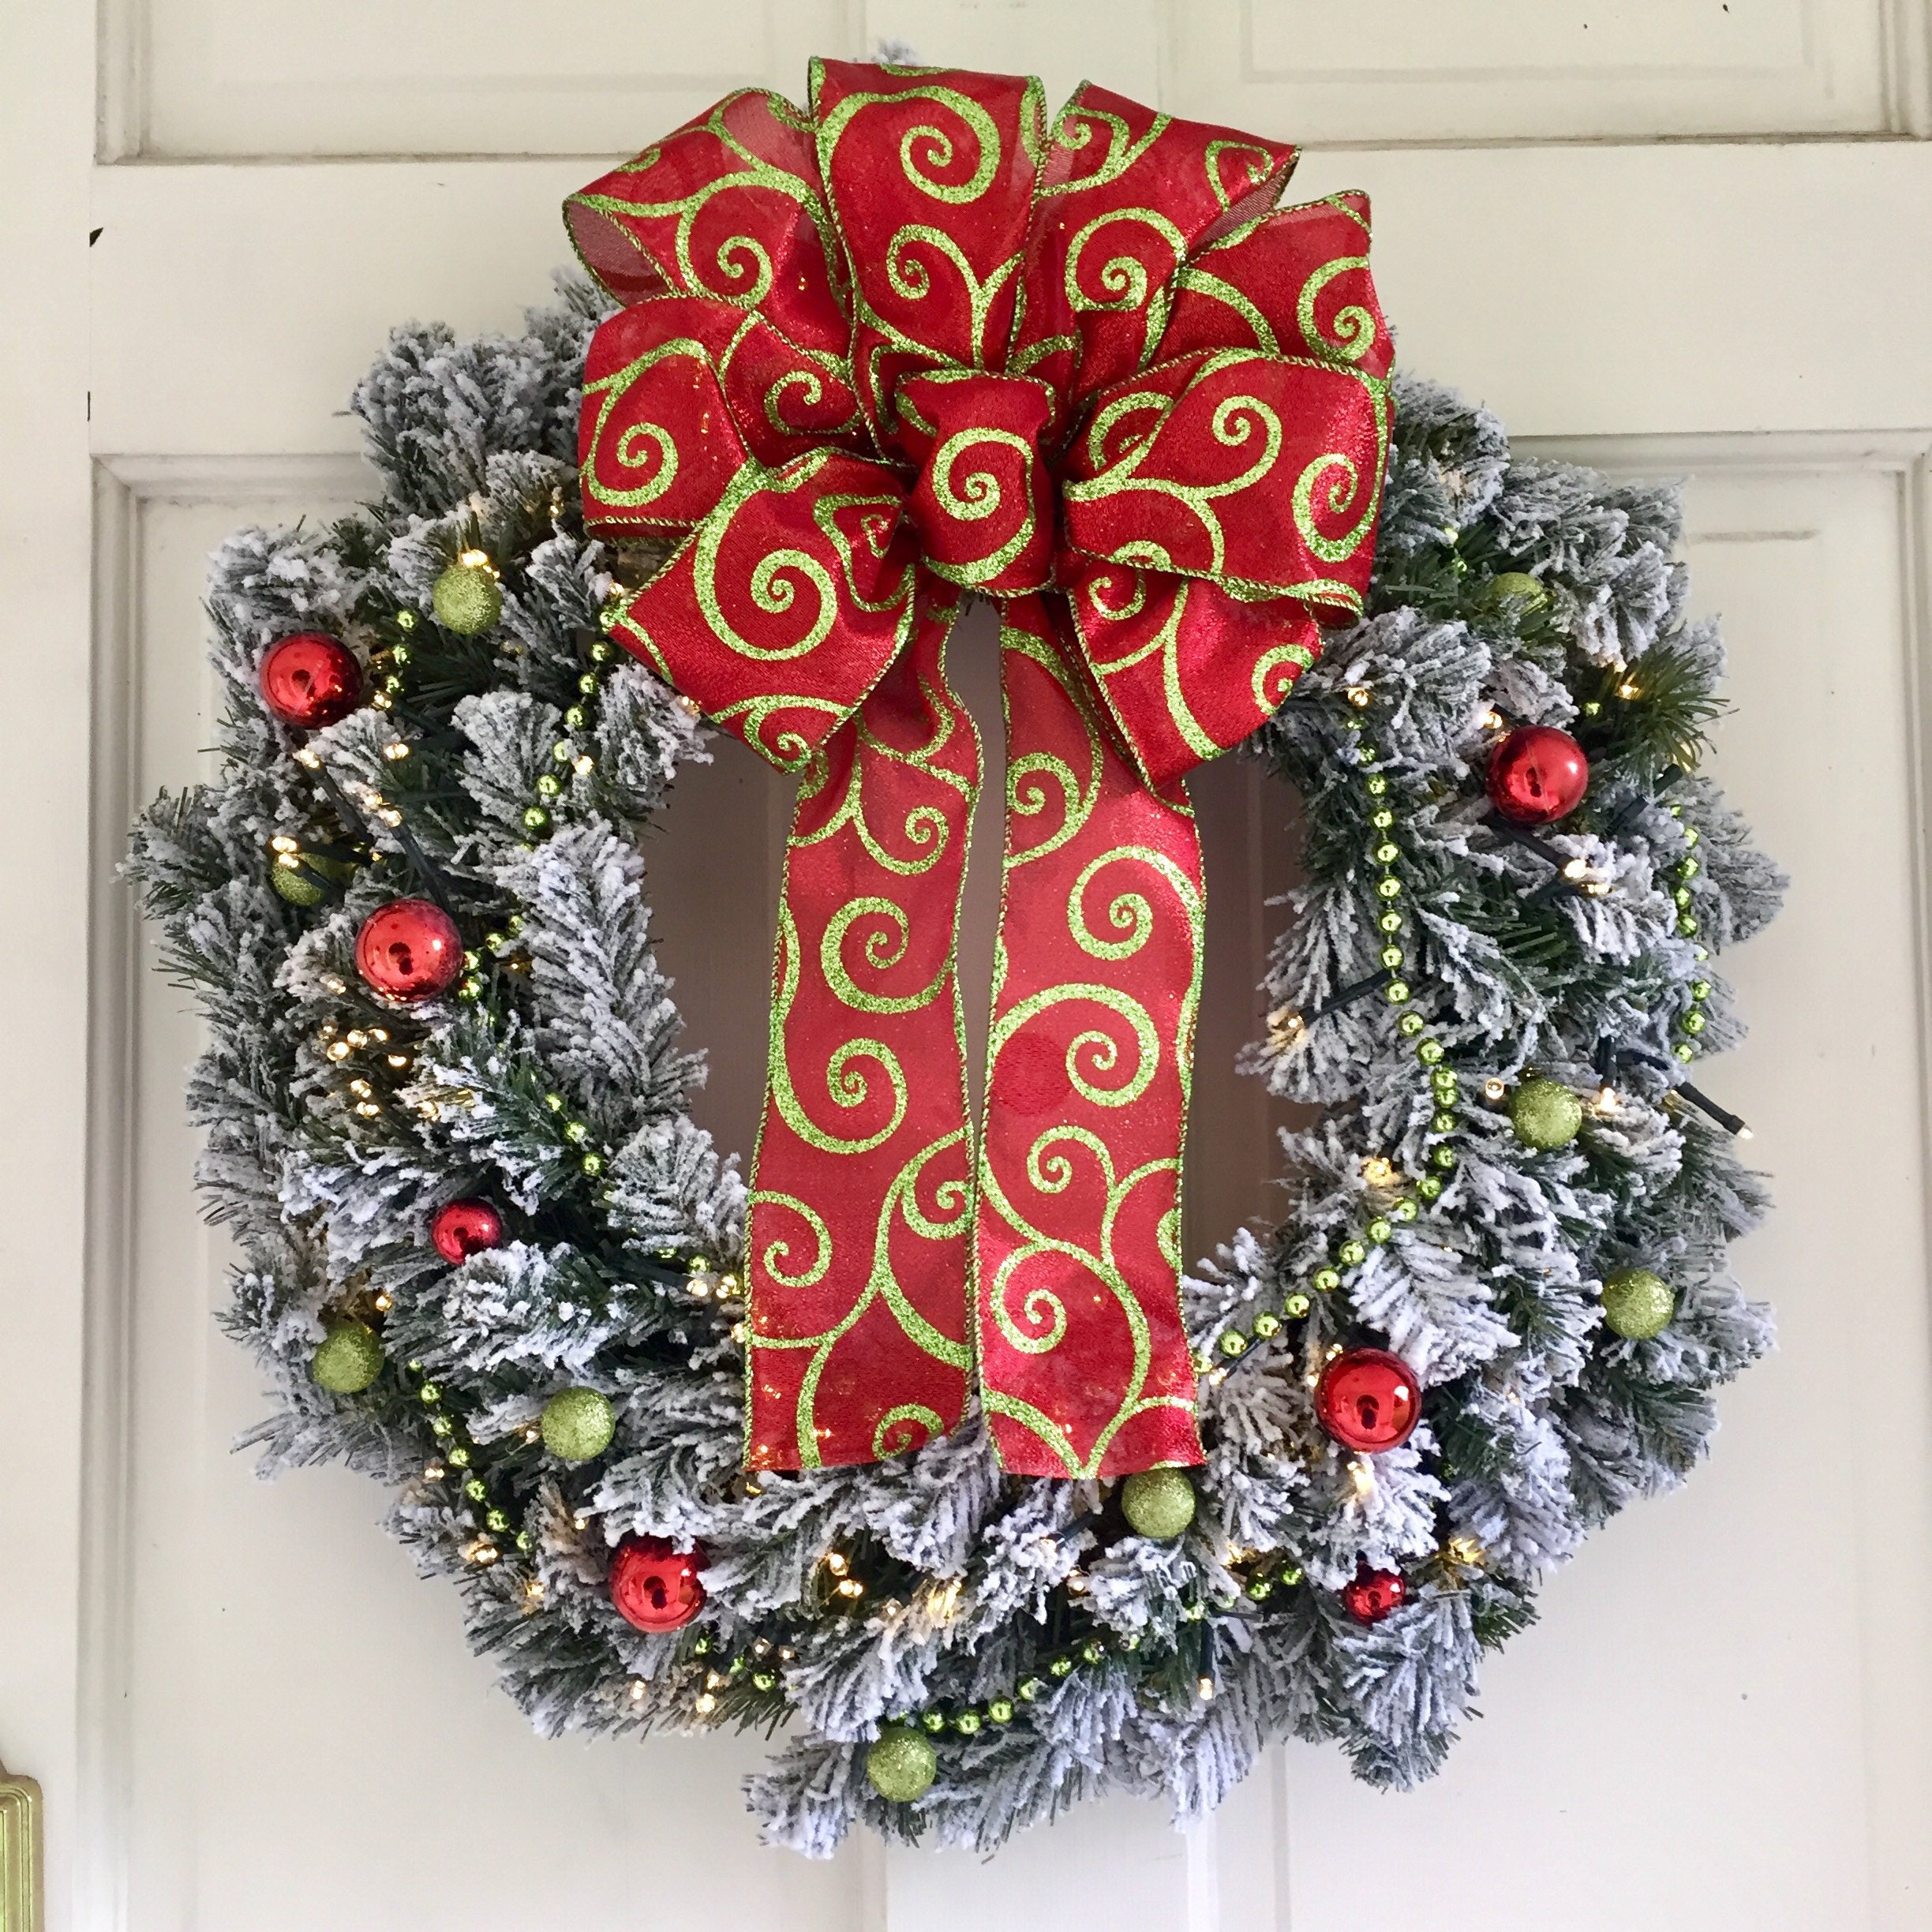 lighted christmas wreath faux pine wreath wlime green garland redlime green ornaments bow christmas ornament wreath 24 inch - Lighted Christmas Ornaments